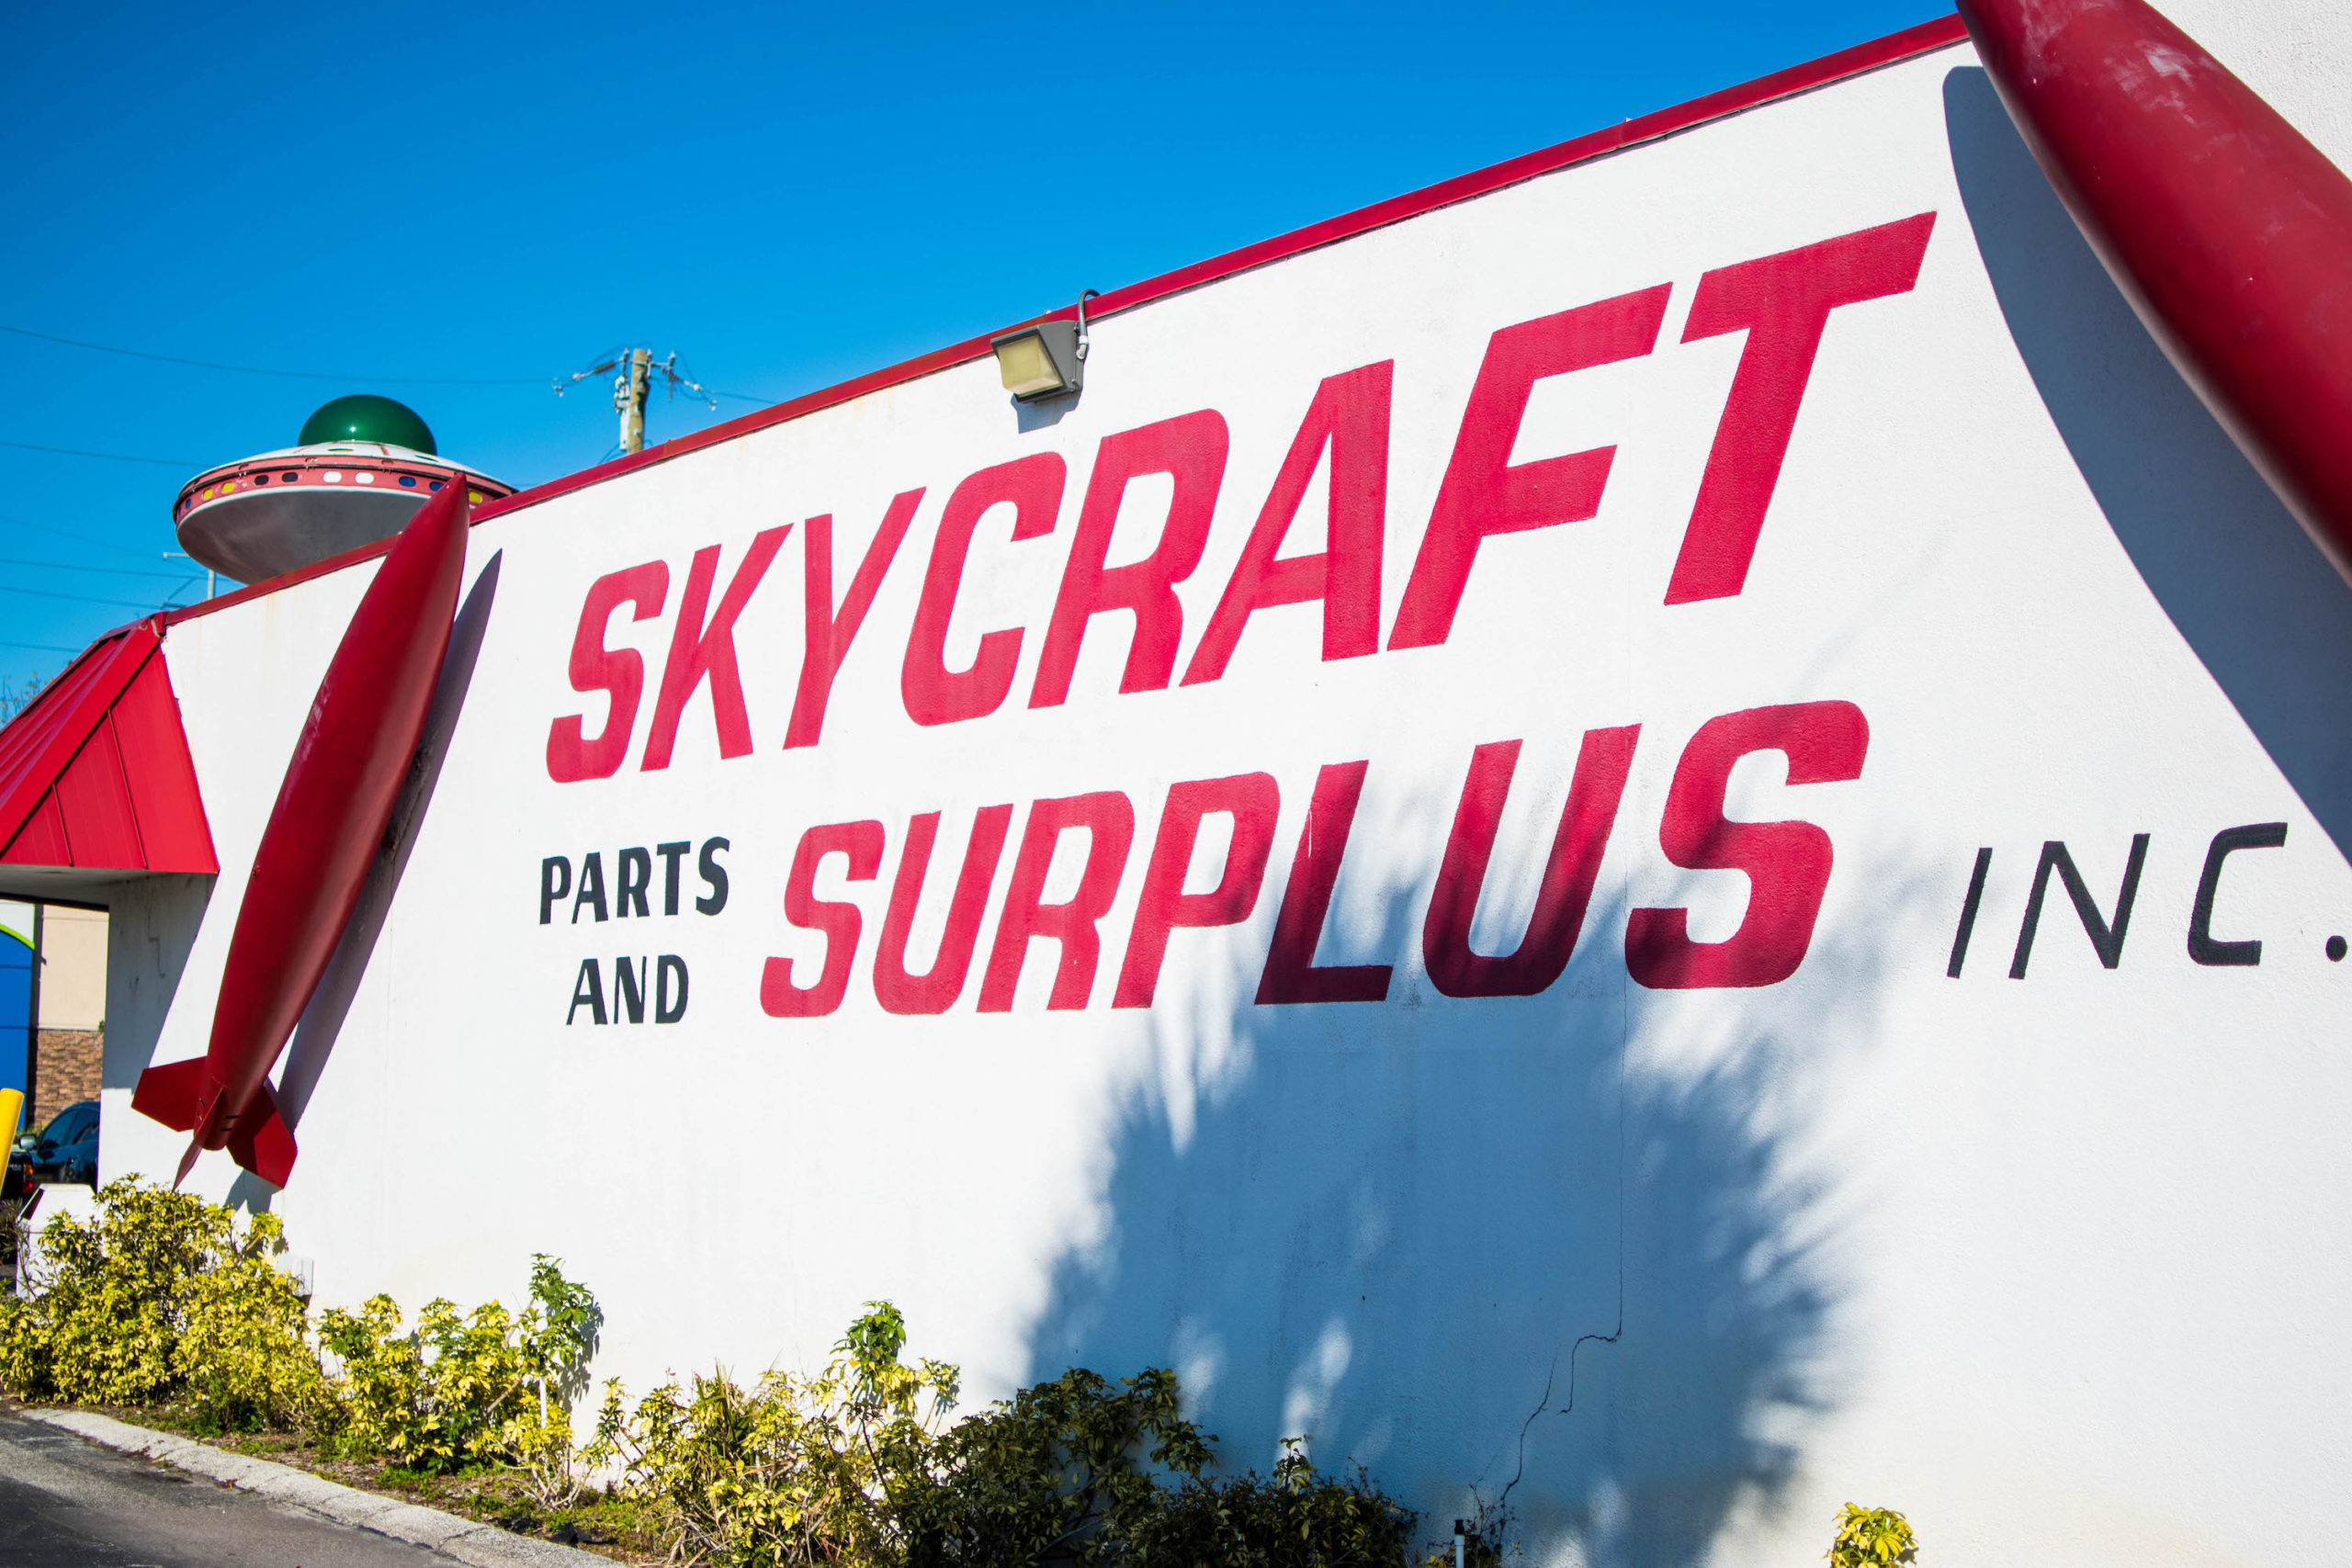 Red Skycraft Parts & Surplus building sign.